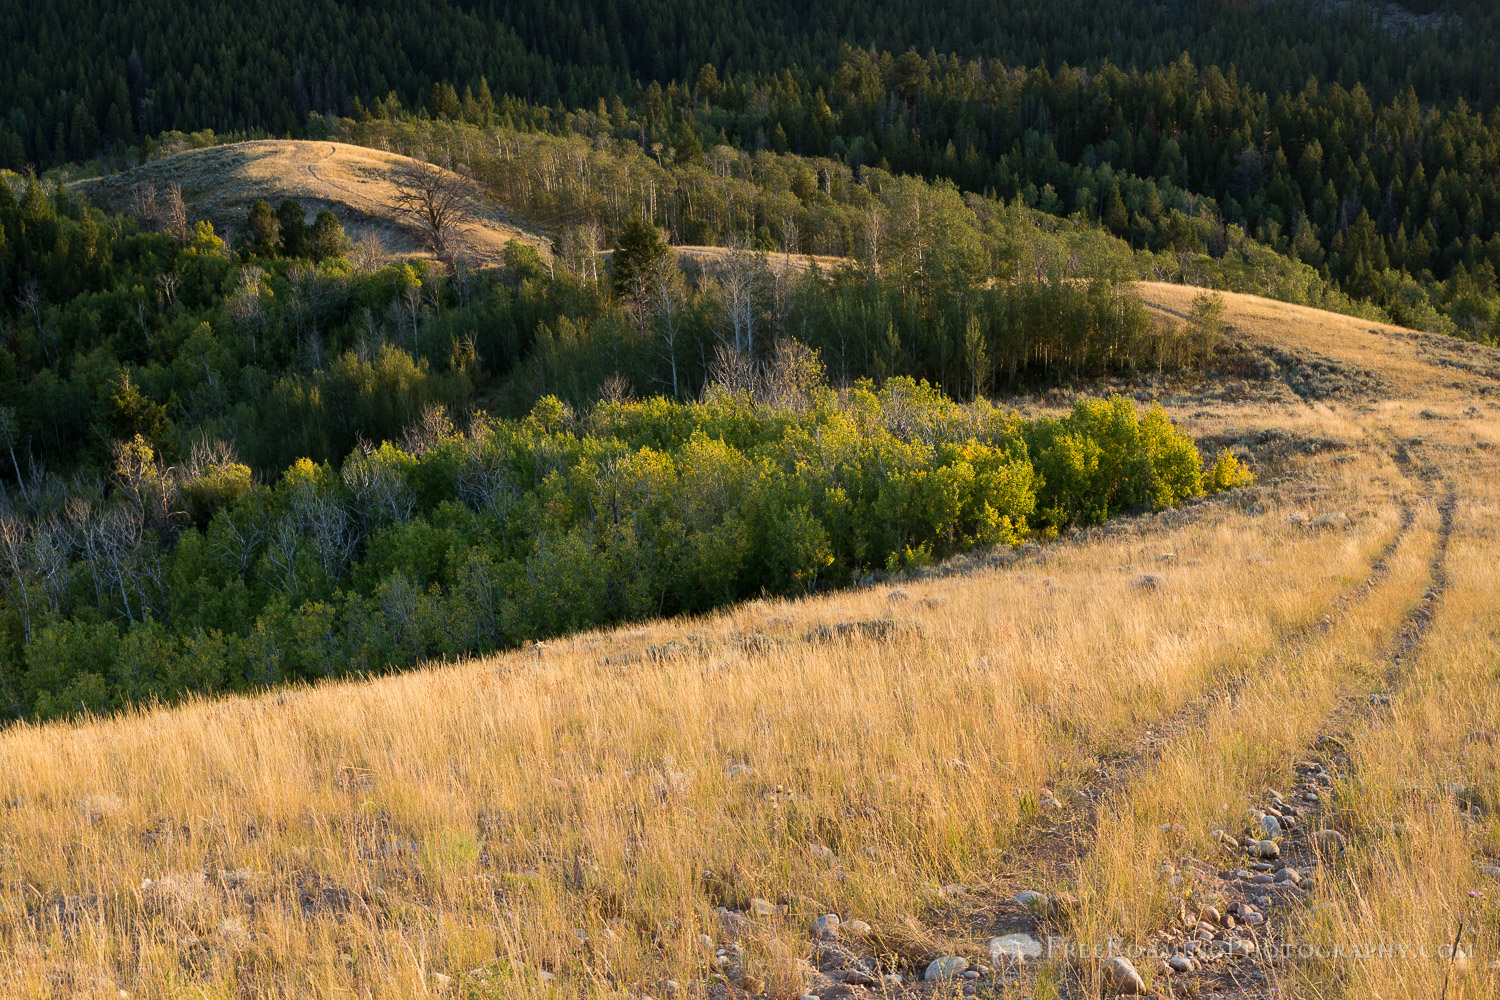 Trail Over Grassy Ridgeline